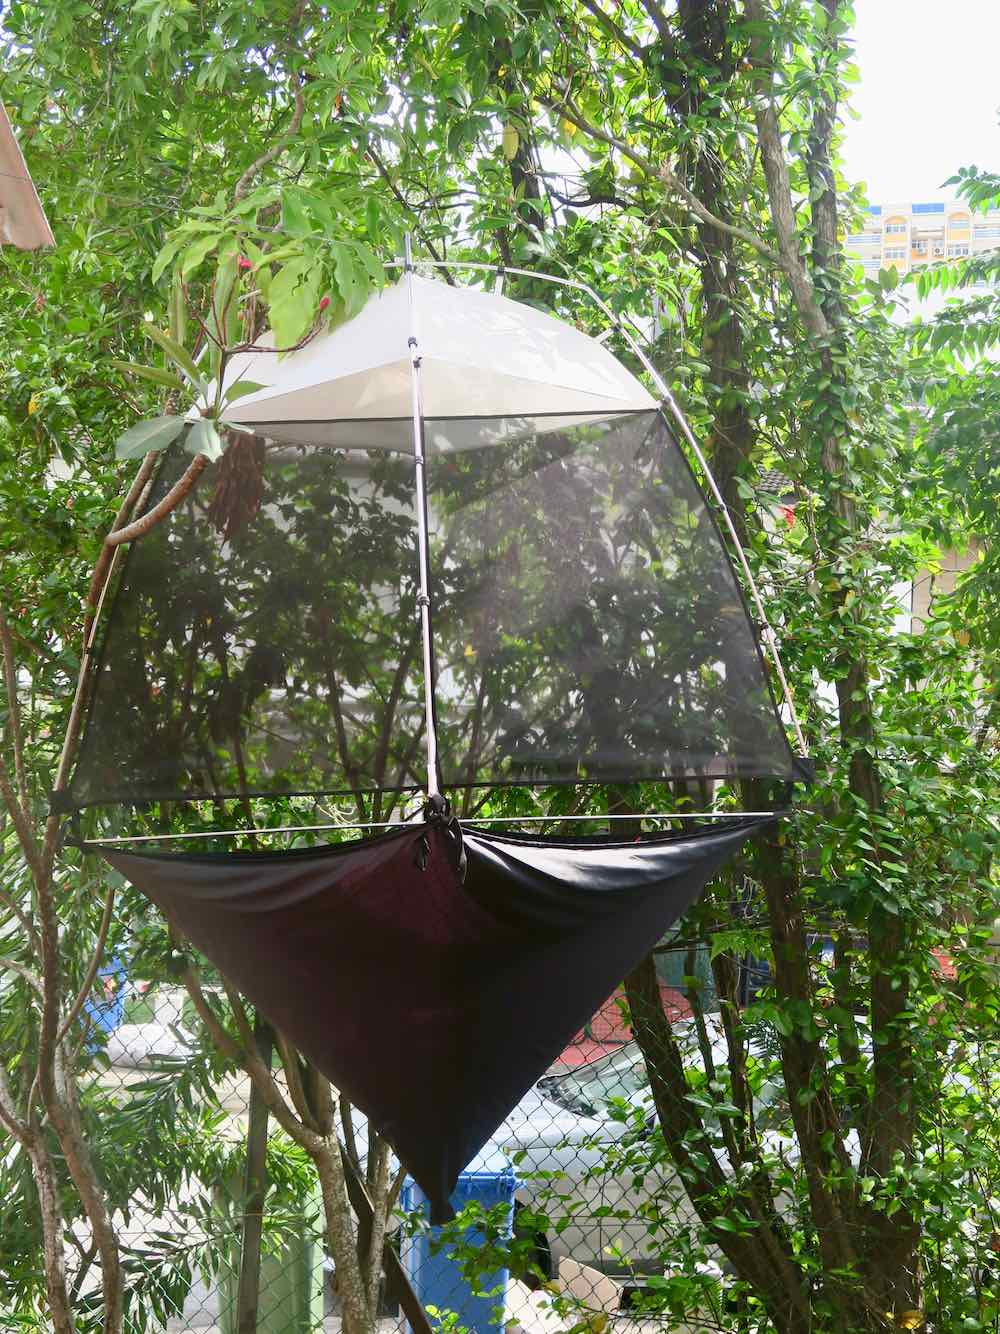 Insect trap at Bizarre Honour Singapore |curlytraveller.com